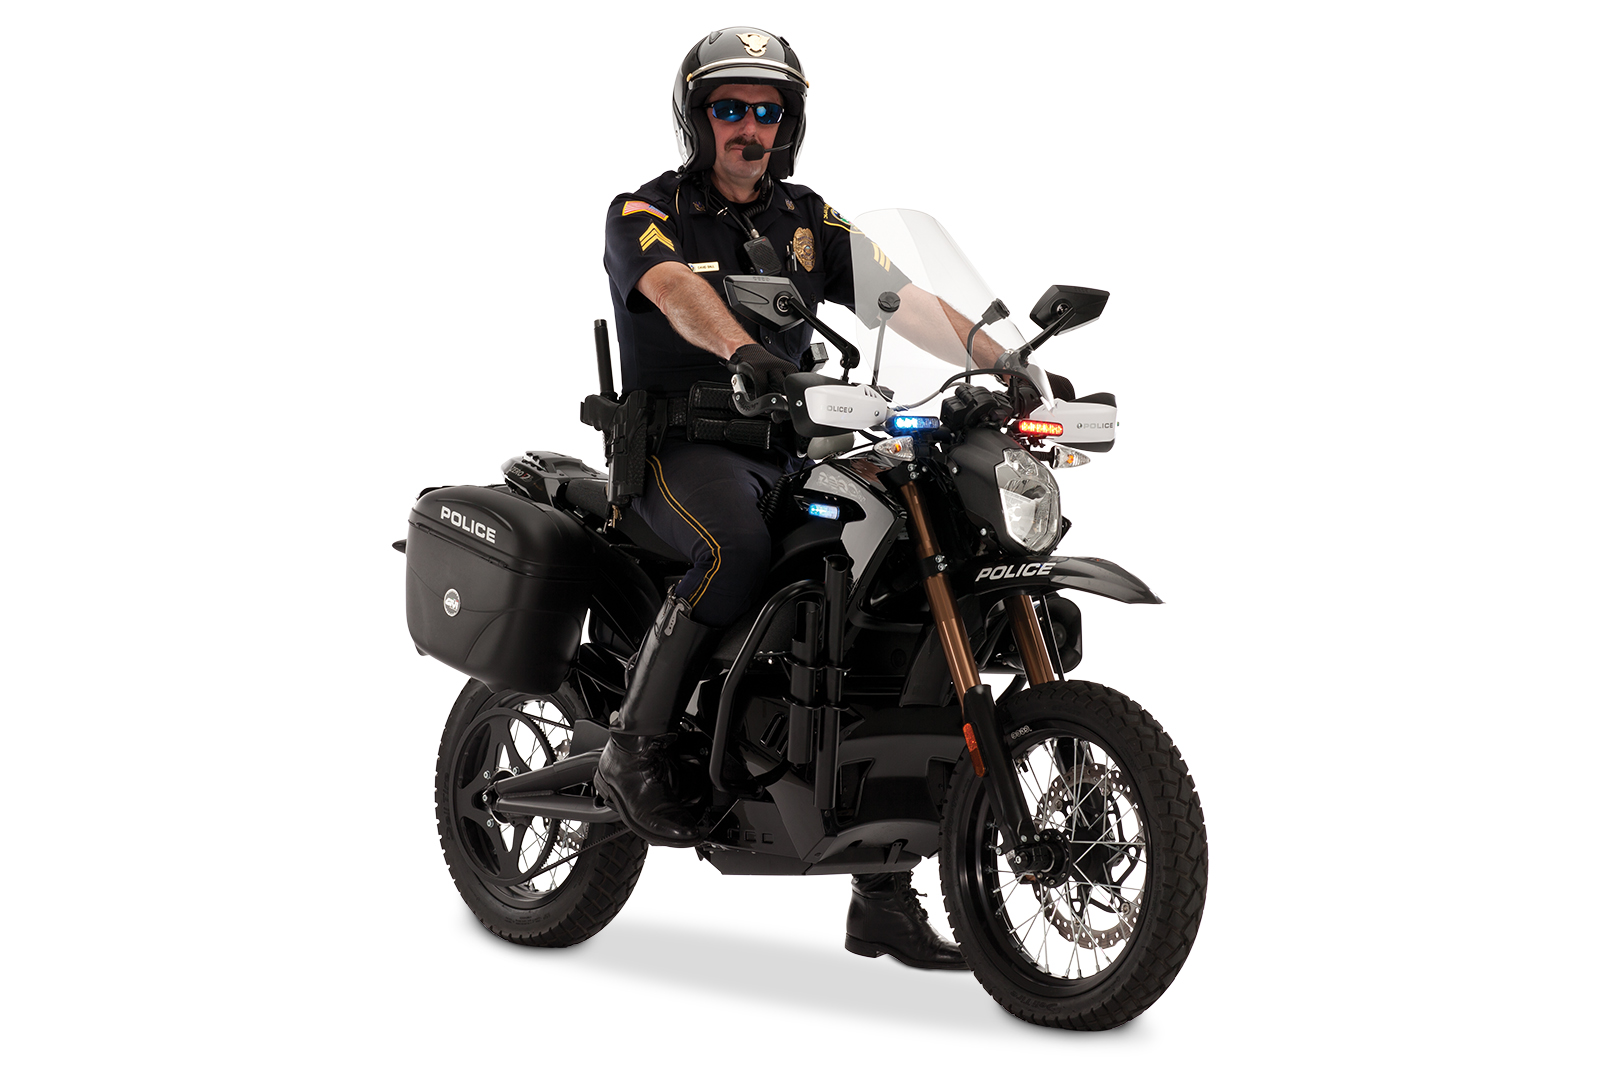 2012 Zero DS Police Motorcycles: Angle Left with Policeman